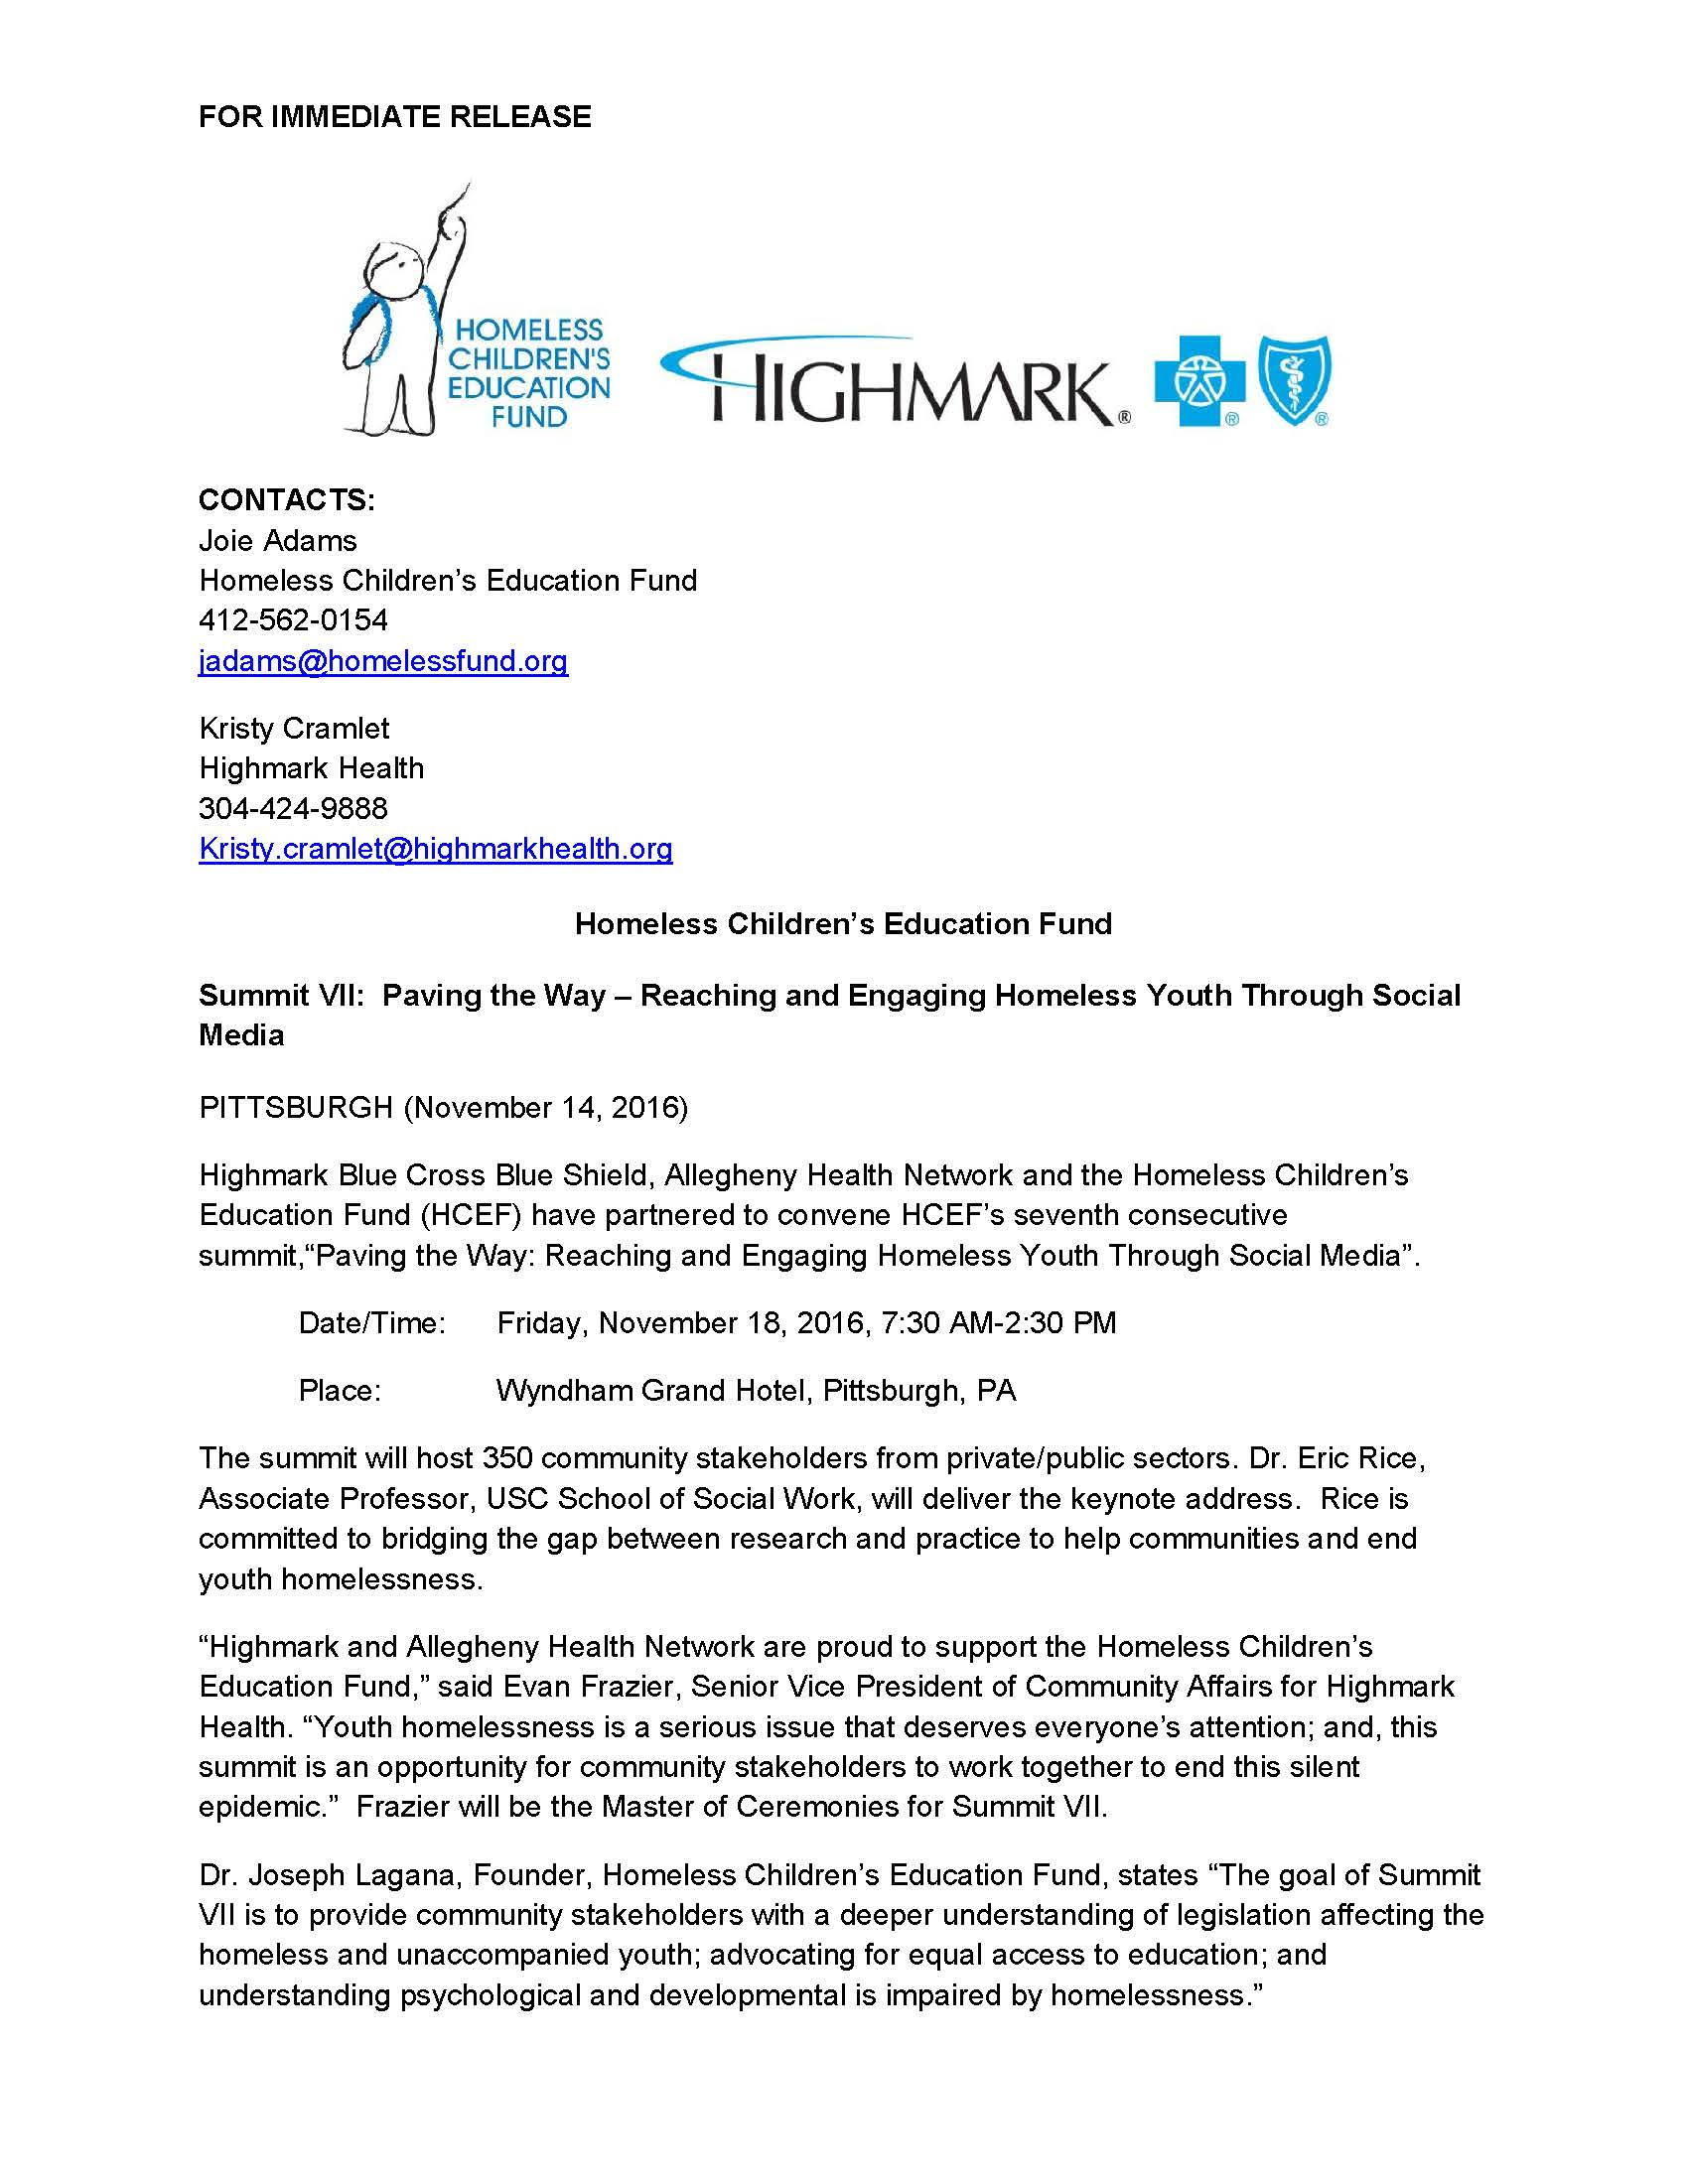 highmark-press-release-summit-vii-final_page_1